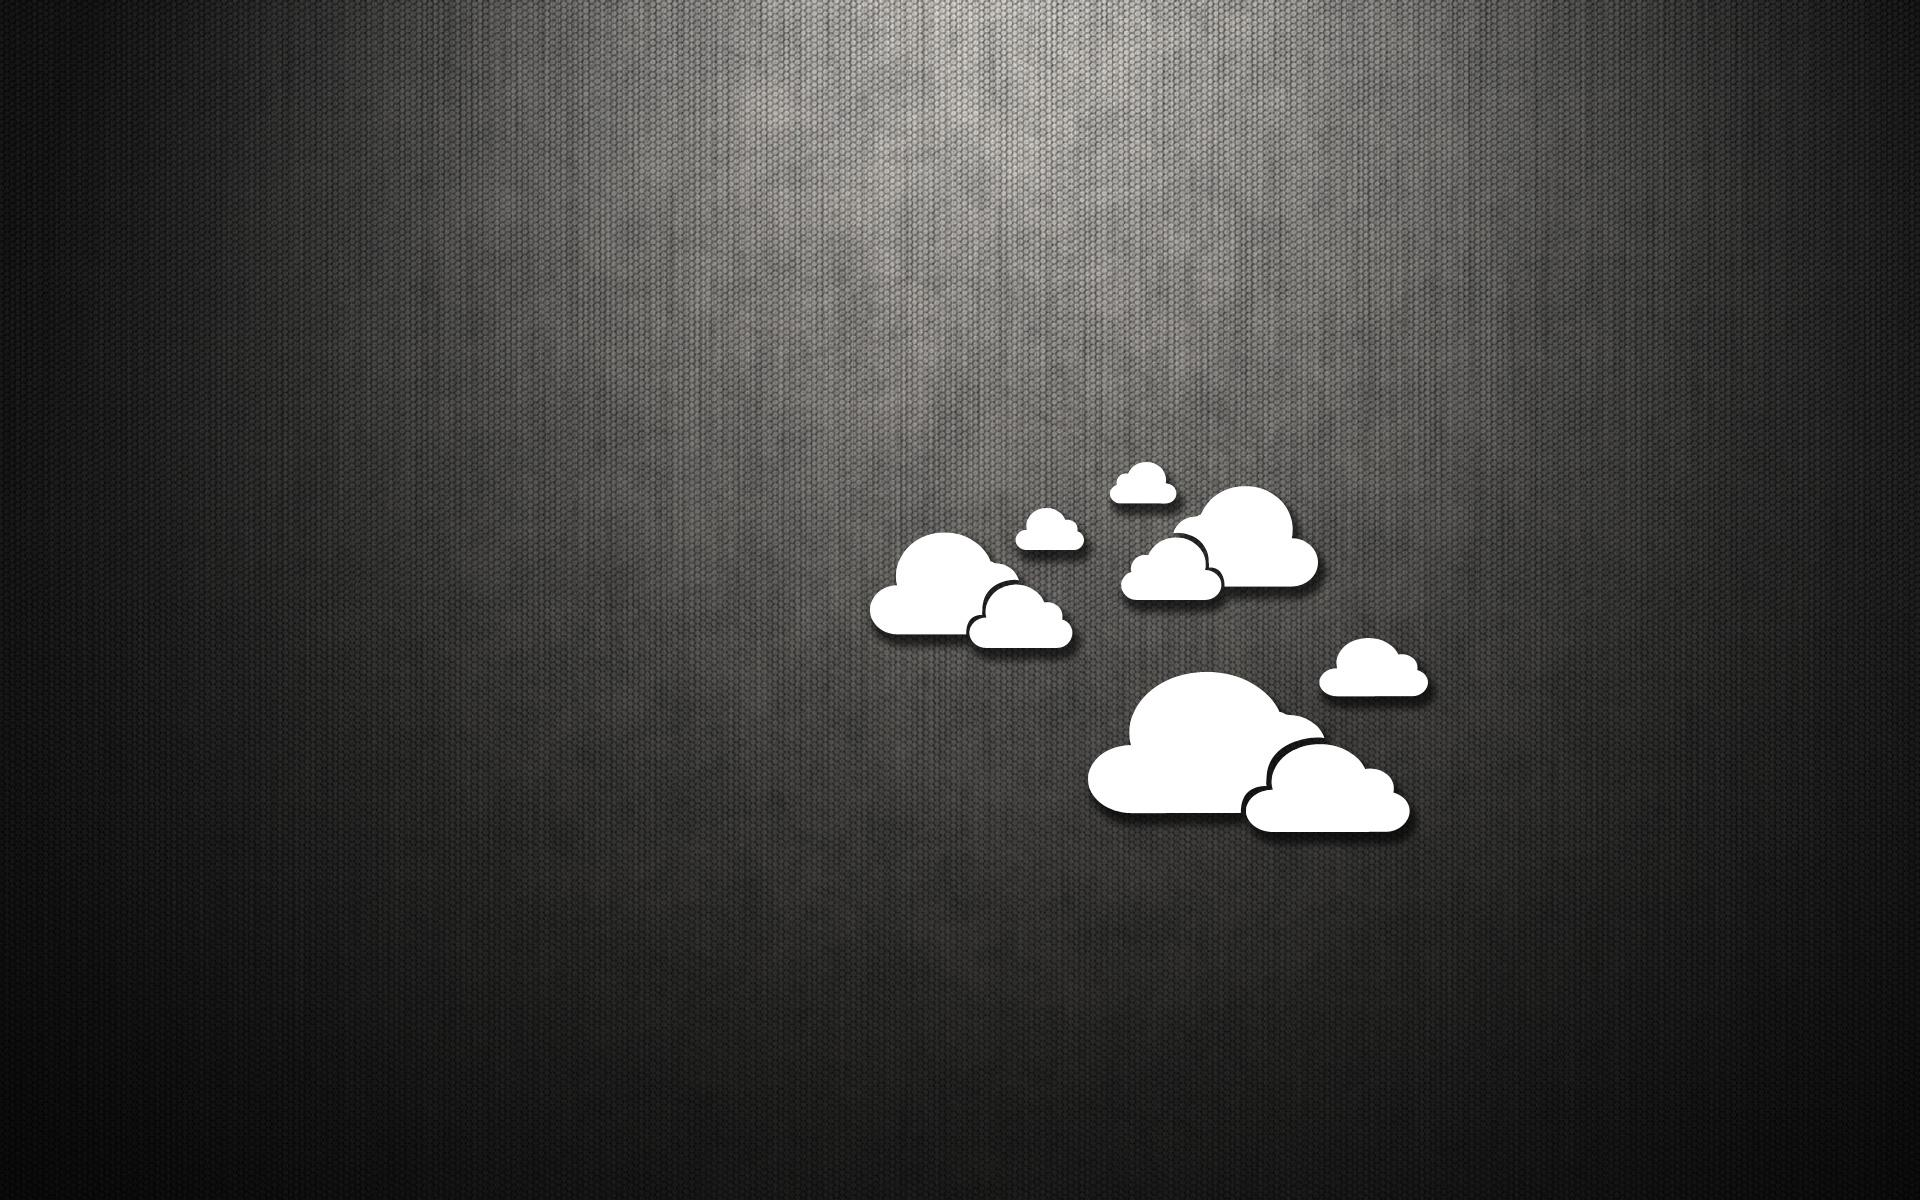 Minimalism Artistic wallpapers HD quality